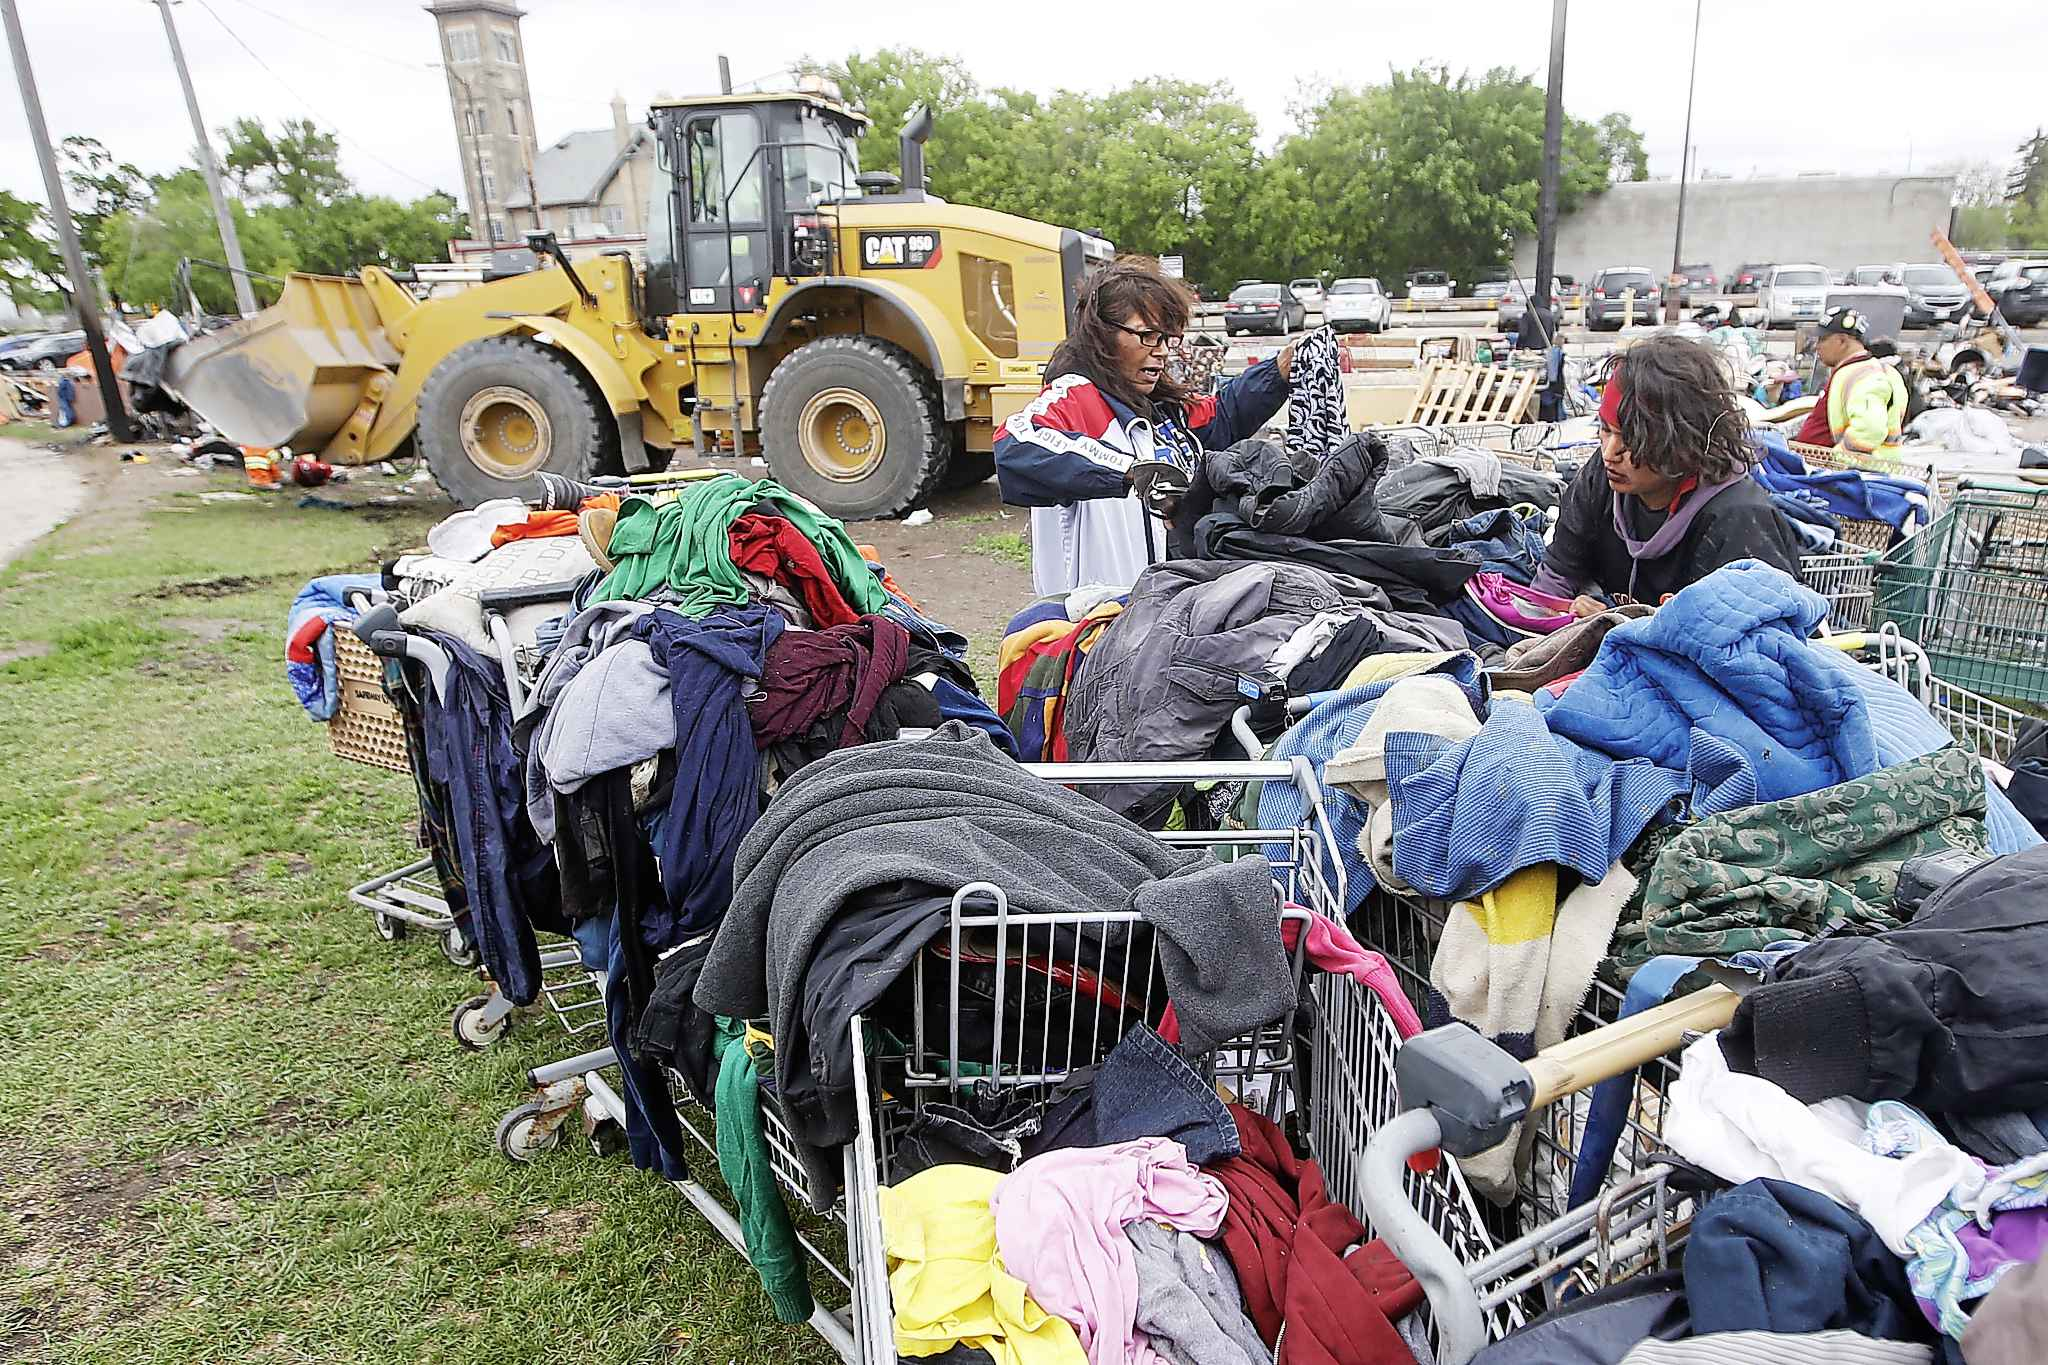 Desirae (right) and another resident look through carts of clothing as city crews dismantle camps.